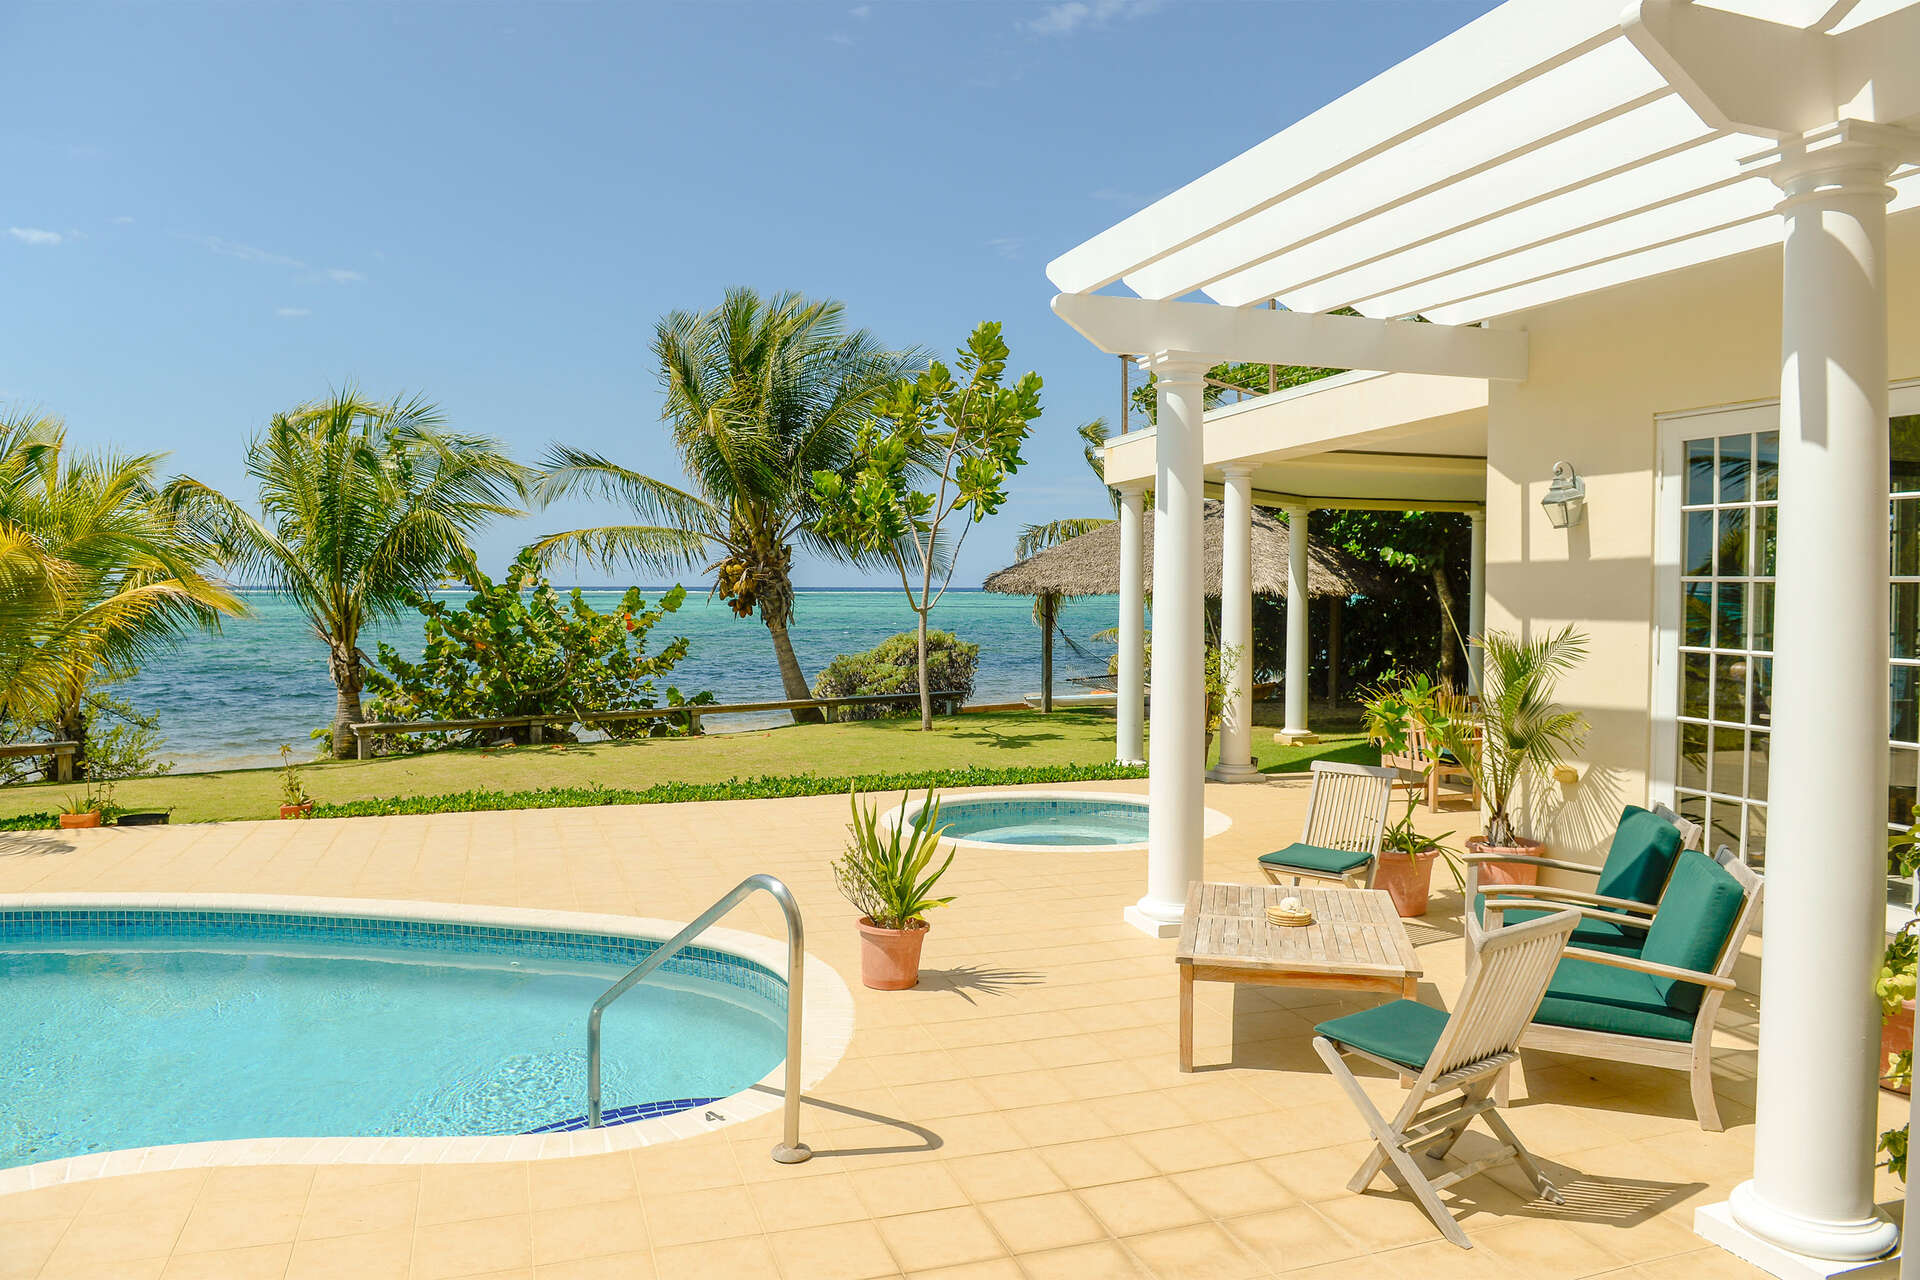 Luxury villa rentals caribbean - Cayman islands - Grand cayman - South sound - Picture Perfect - Image 1/18